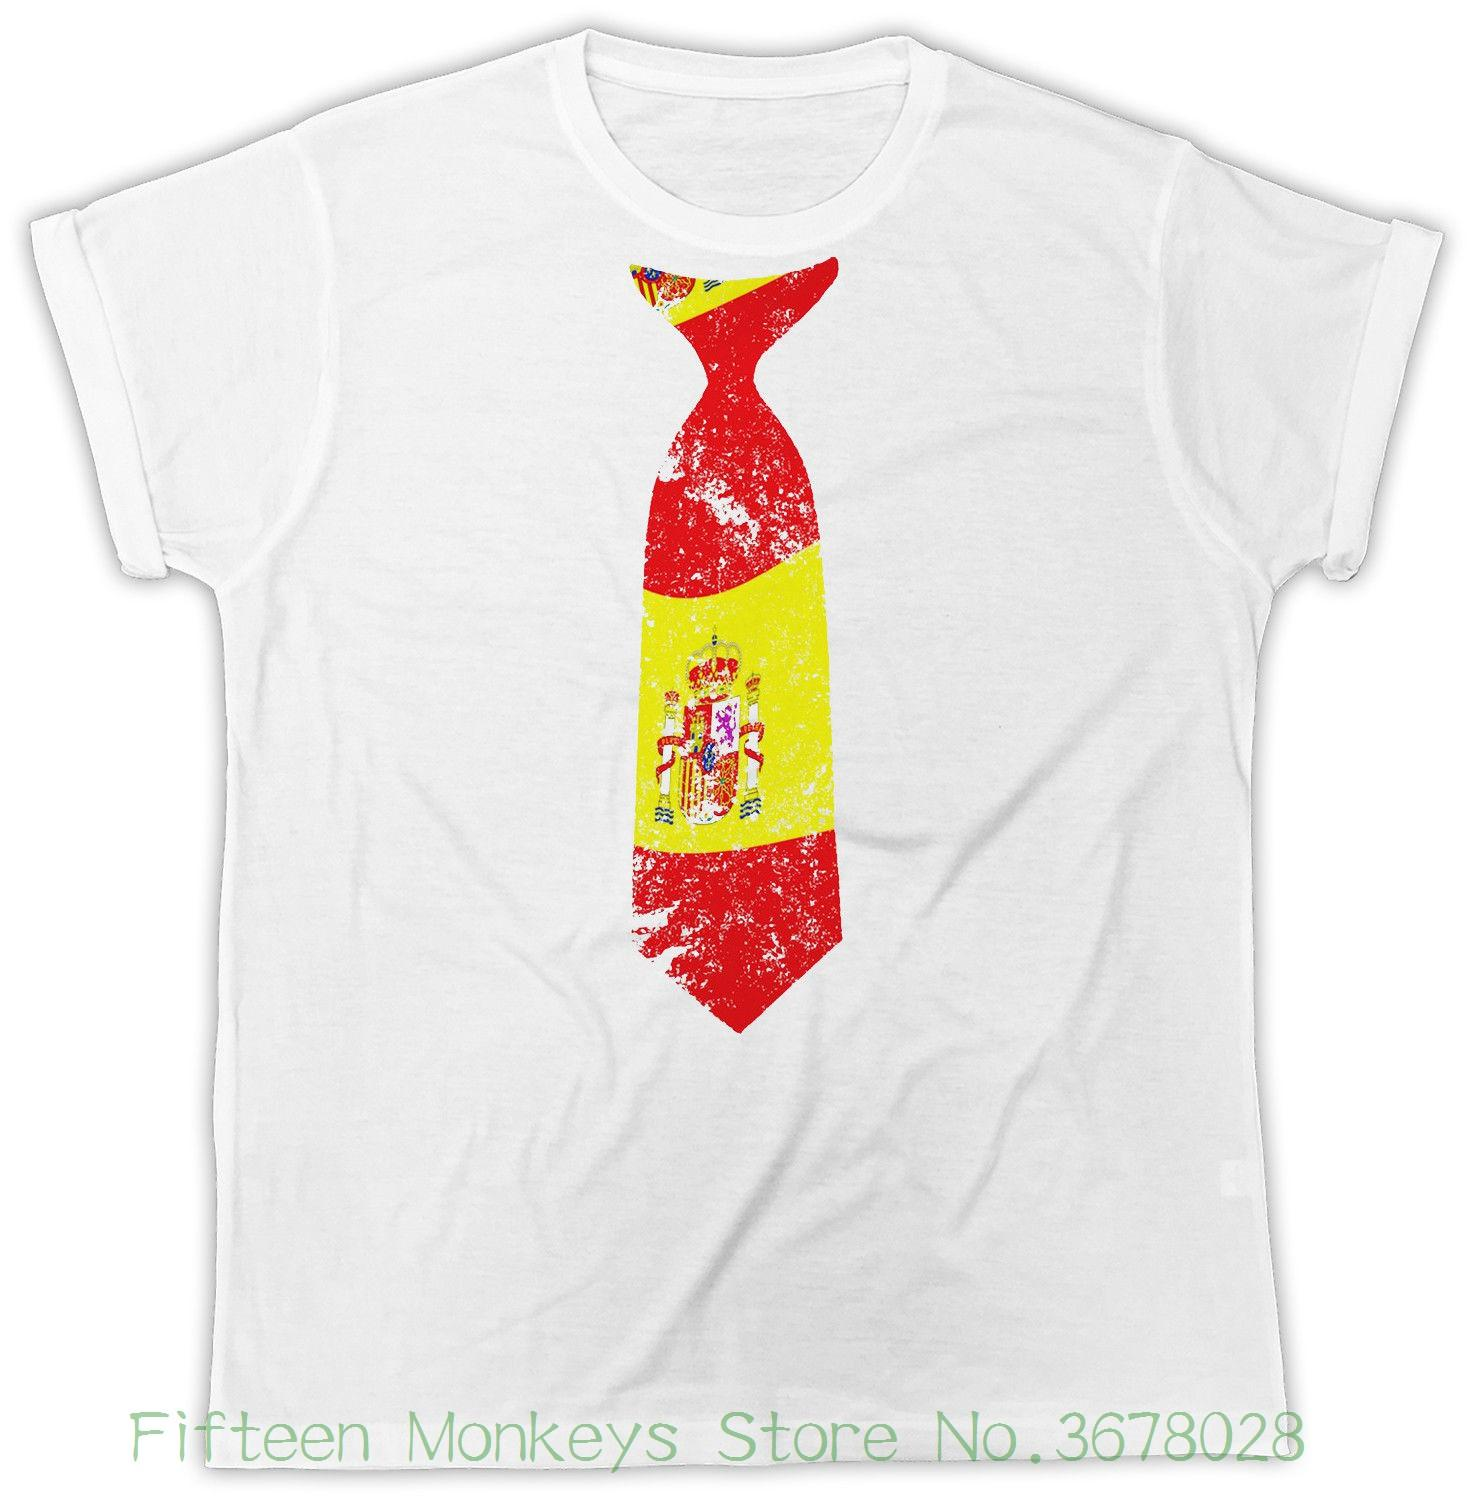 072d12c8 Women's Tee Spain Tie T-shirt Spanish Souvenir Country Fan Unisex Tshirt  Women Brand Kawaii